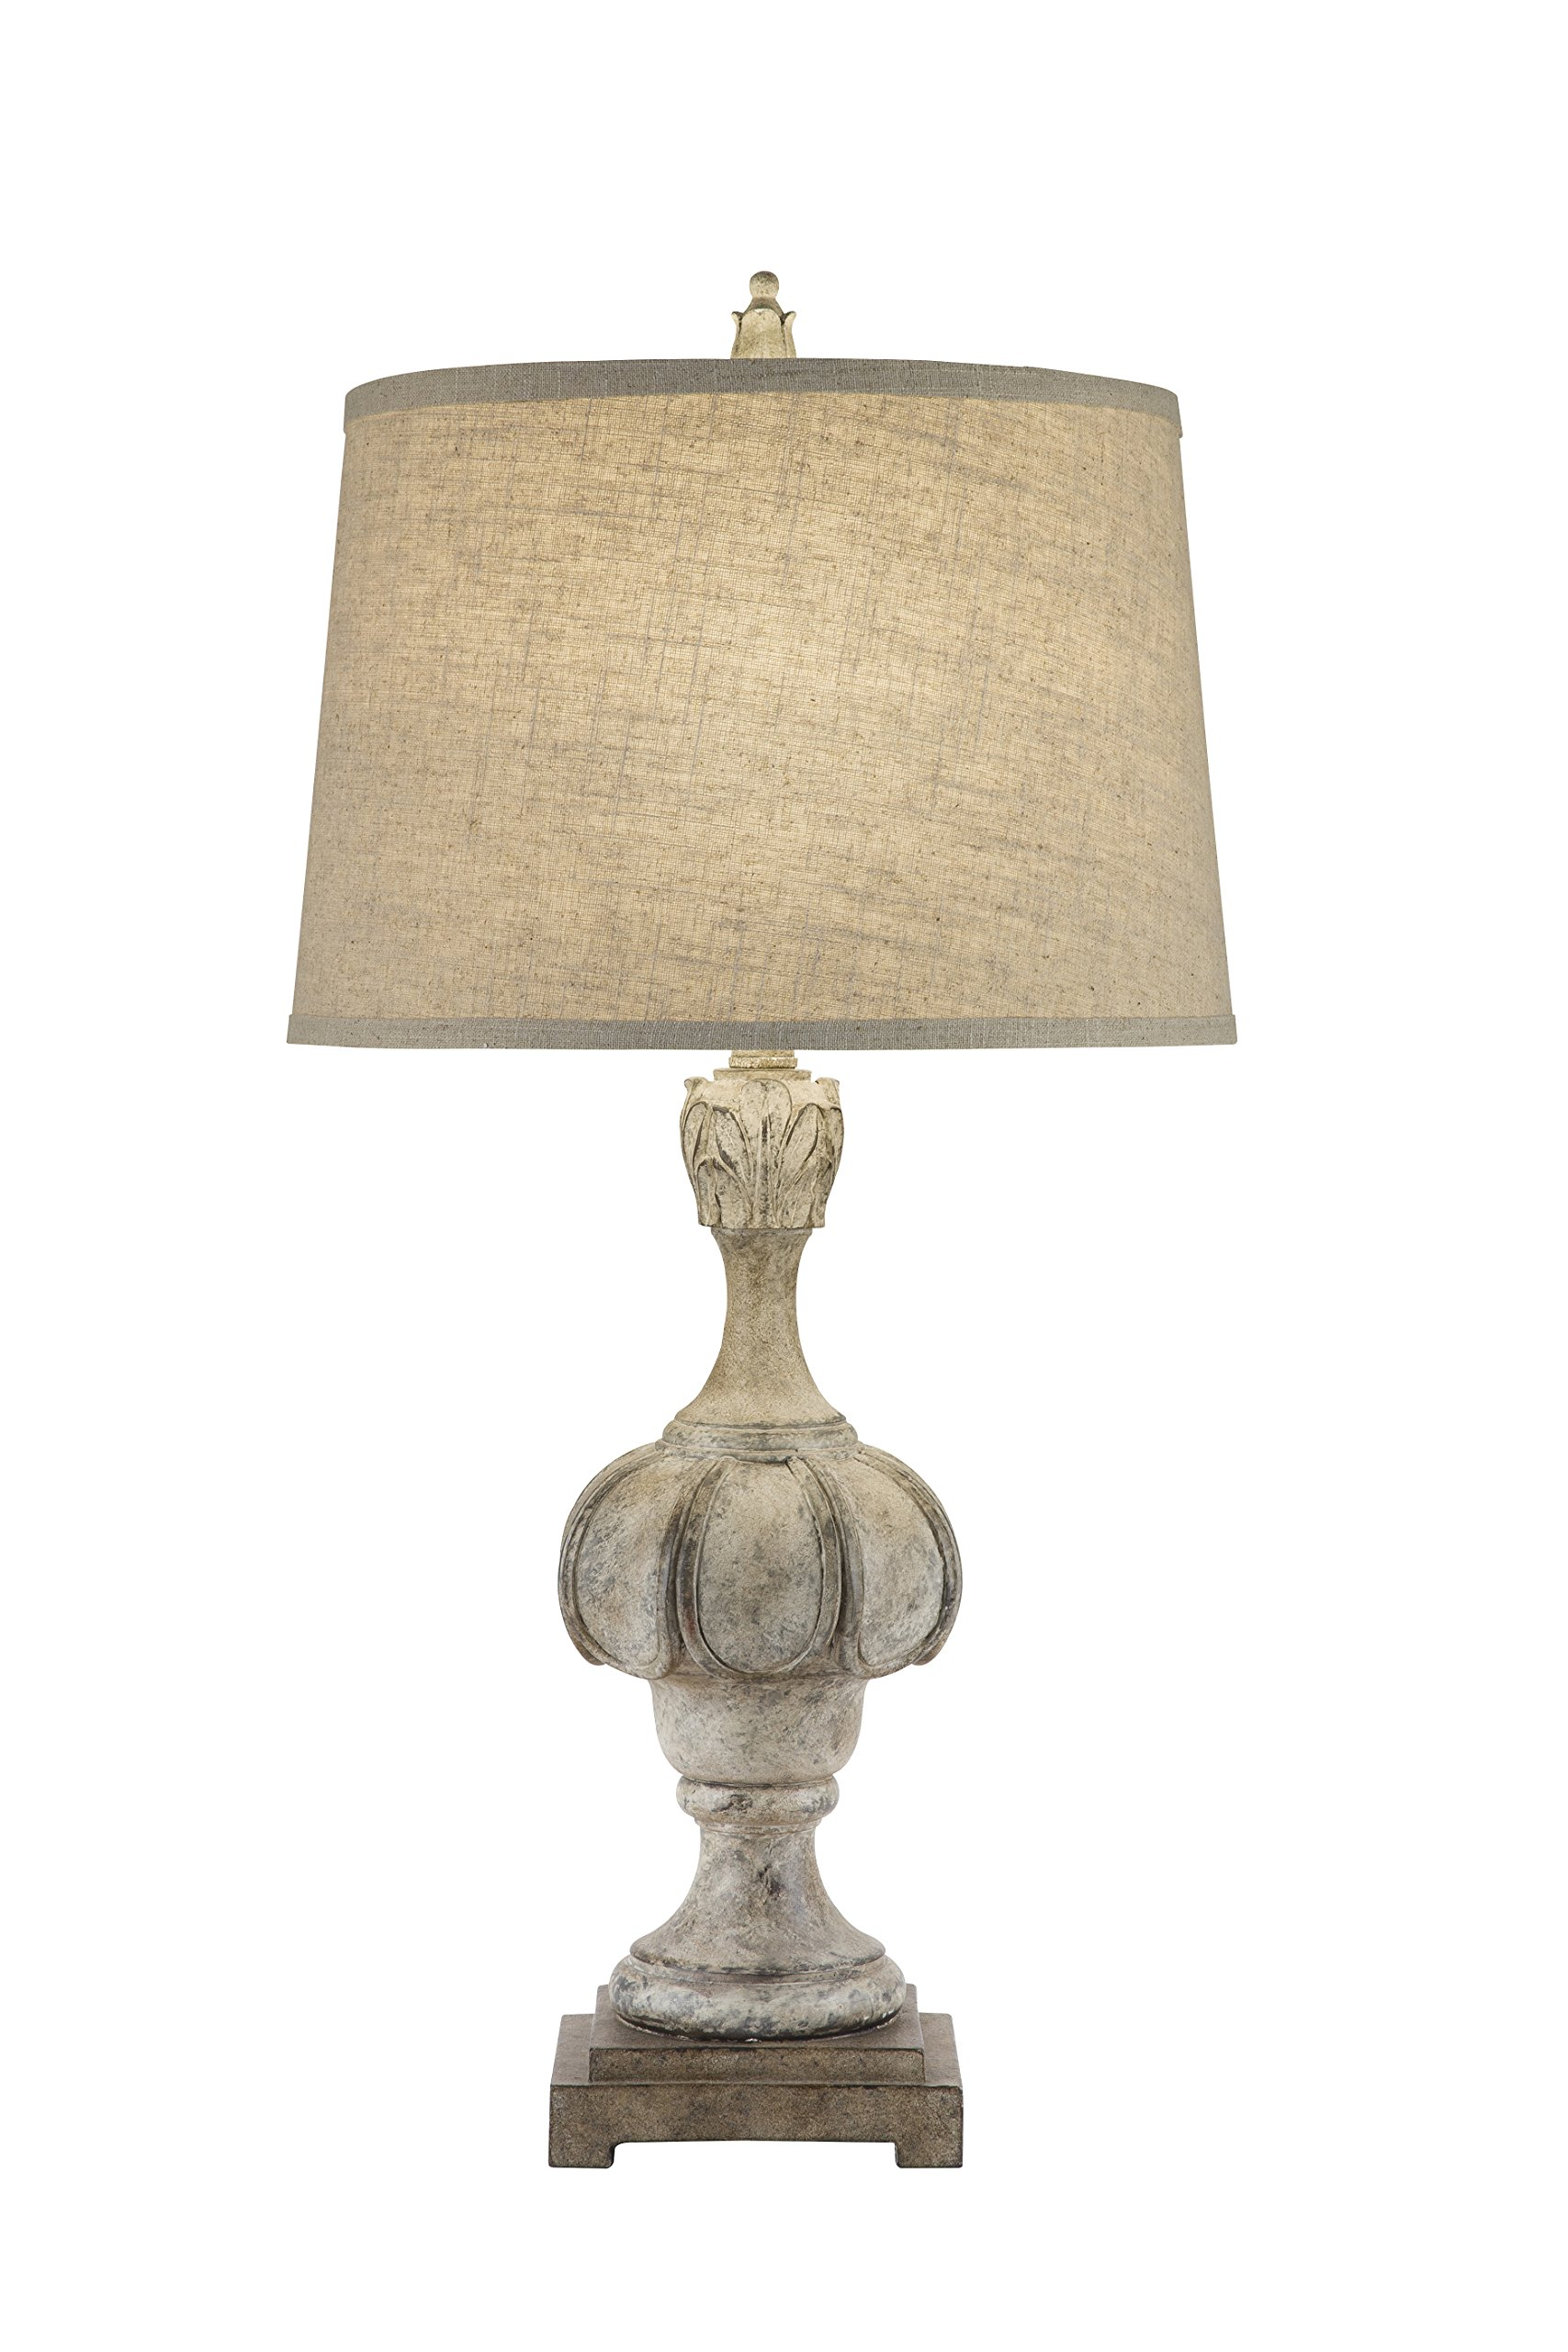 Catalina 19951-001 3-Way 29.5-inch Weathered Distressed Wood Inspired Table Lamp with Oatmeal Linen Modified Drum Shade with Cream Silken Liner, Bulb Included